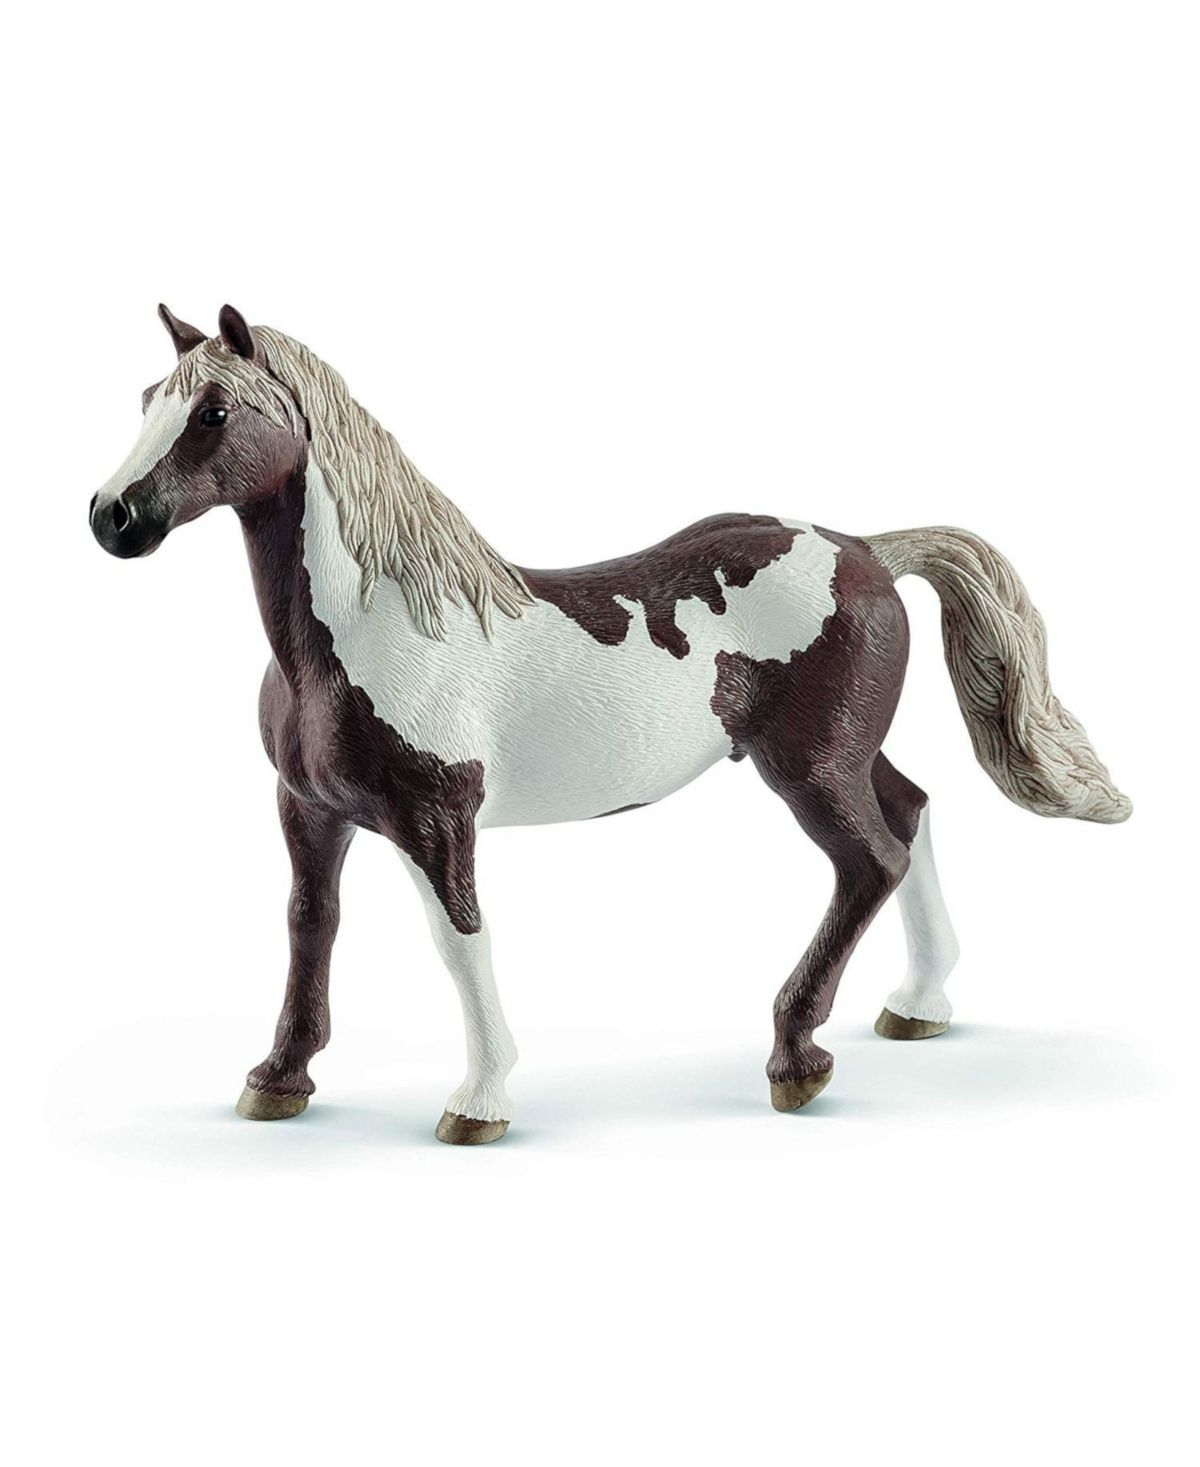 Schleich Horse Club Paint Horse Gelding Toy Animal Figure Reviews Home Macy S Animal Figures Horse Painting Horses